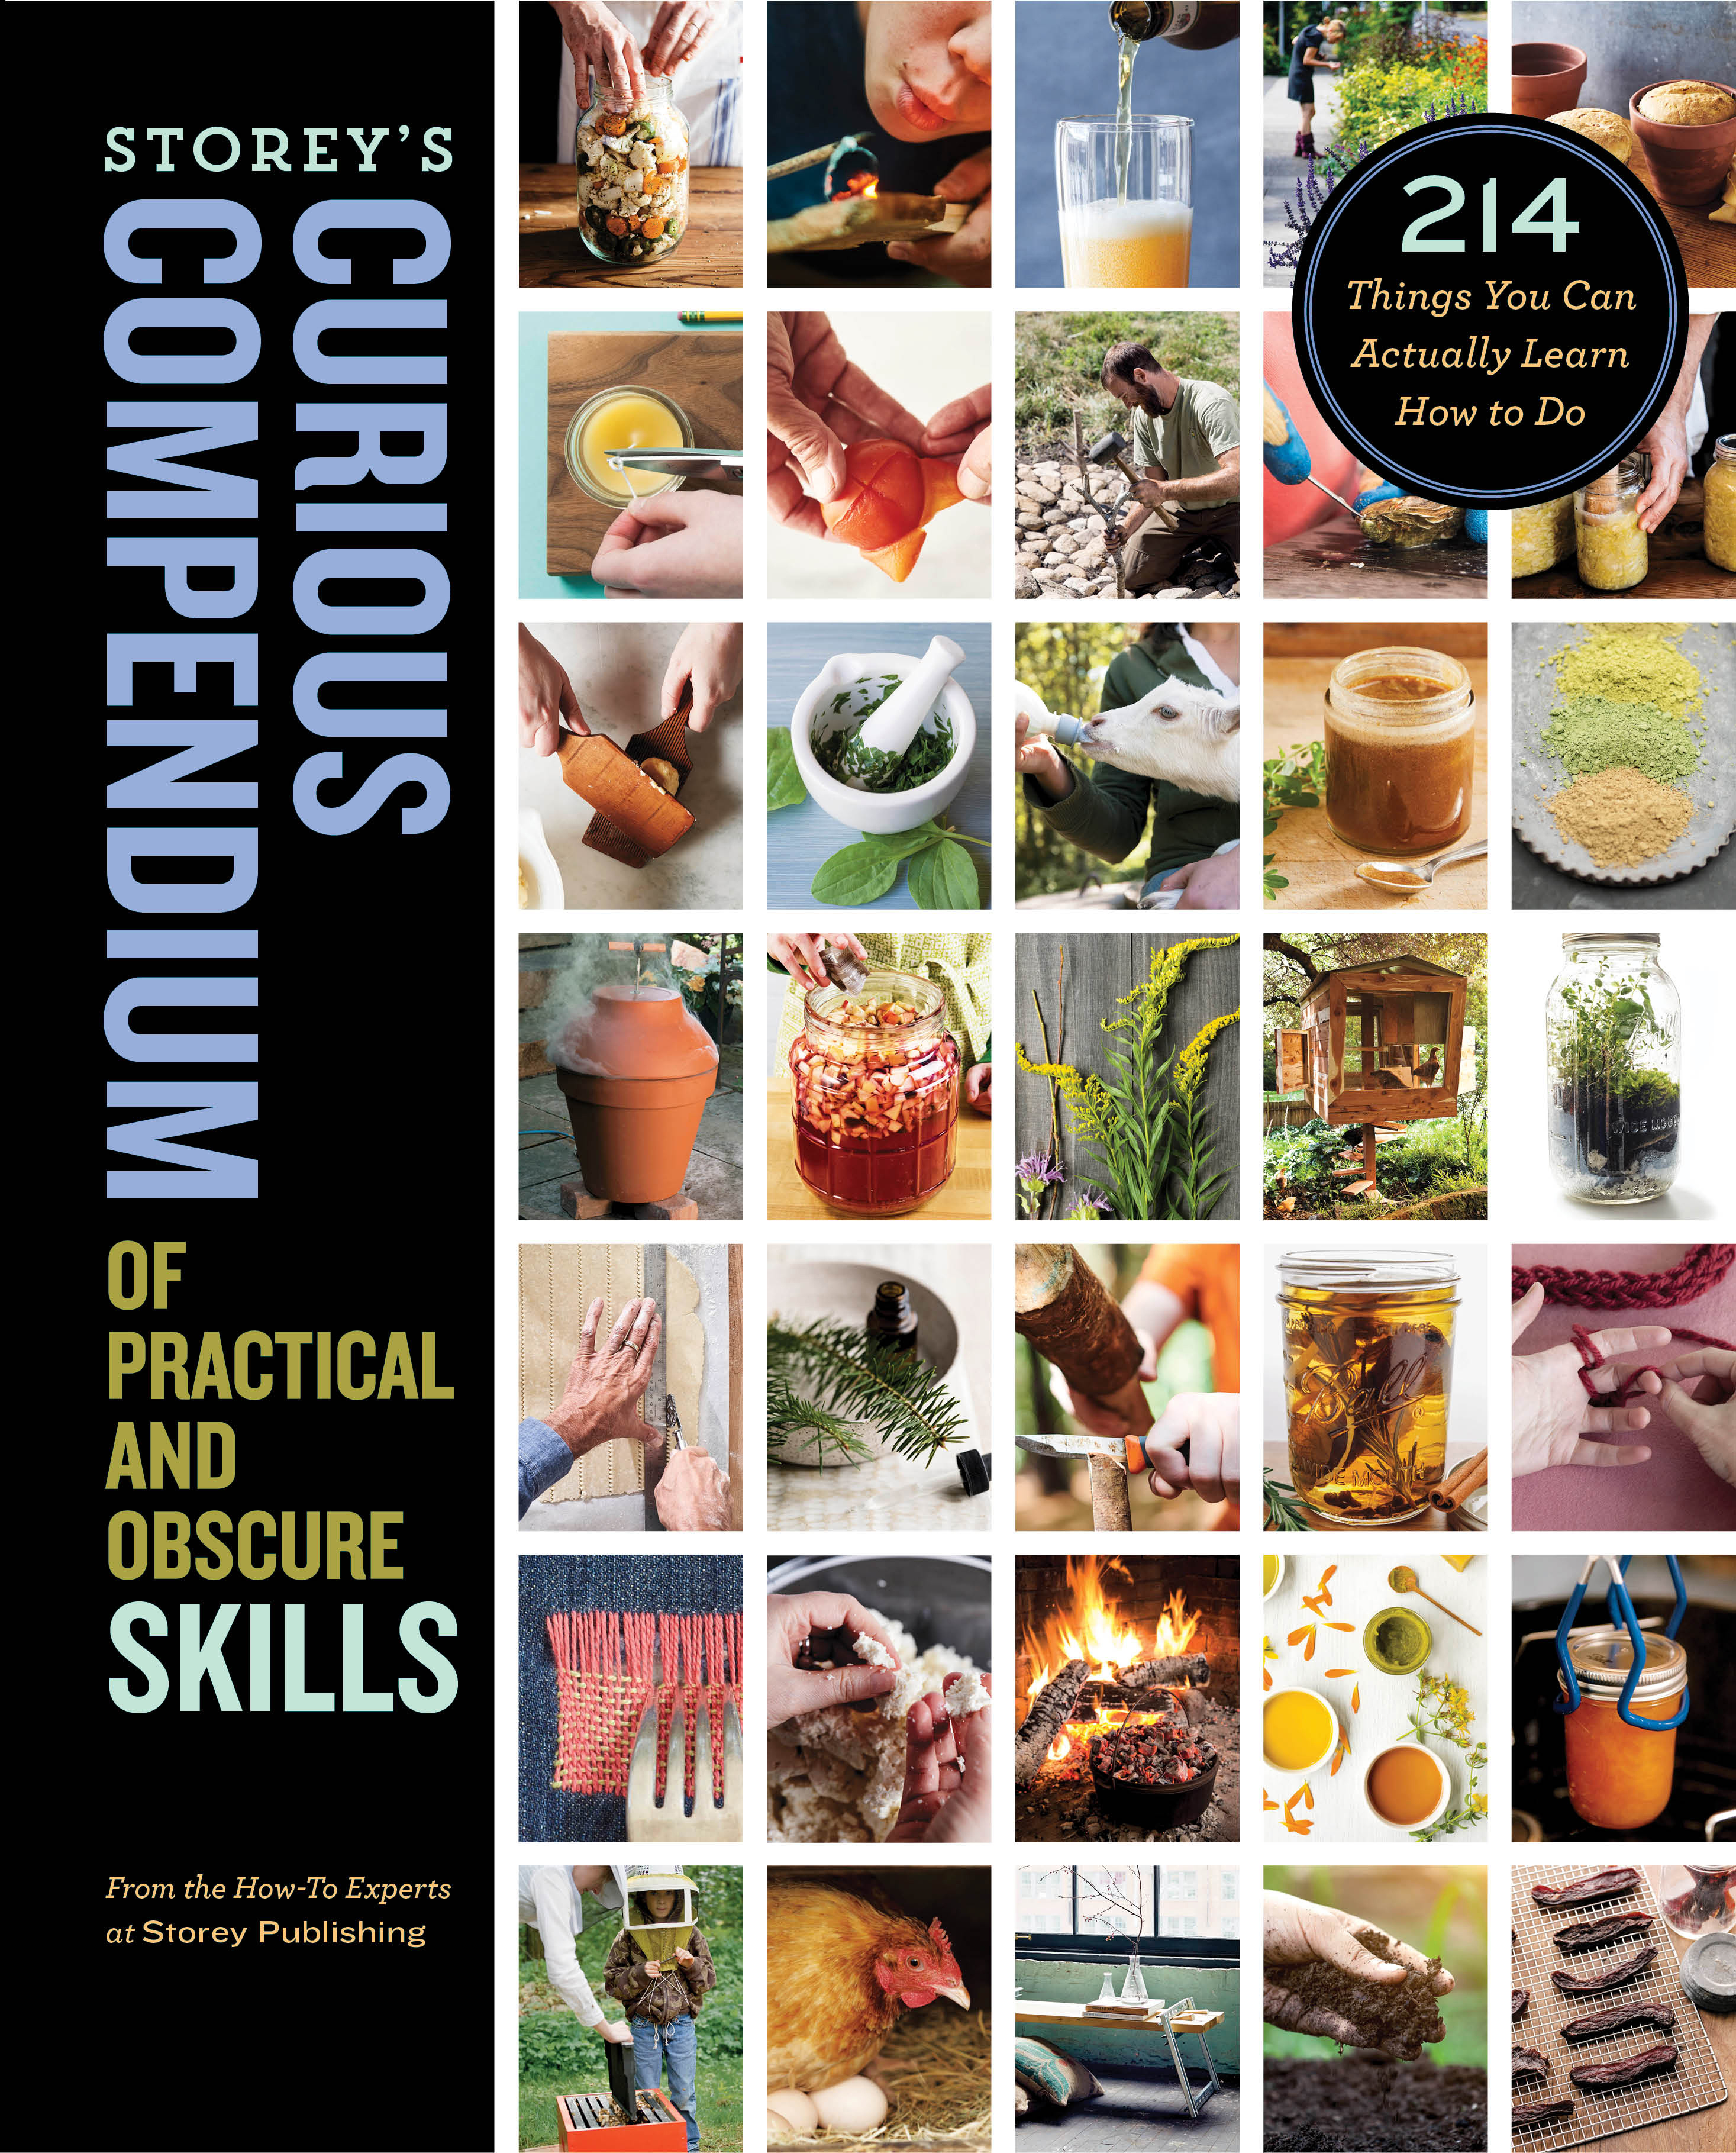 Storey's Curious Compendium of Practical and Obscure Skills 214 Things You Can Actually Learn How to Do - How-To Experts at Storey Publishing